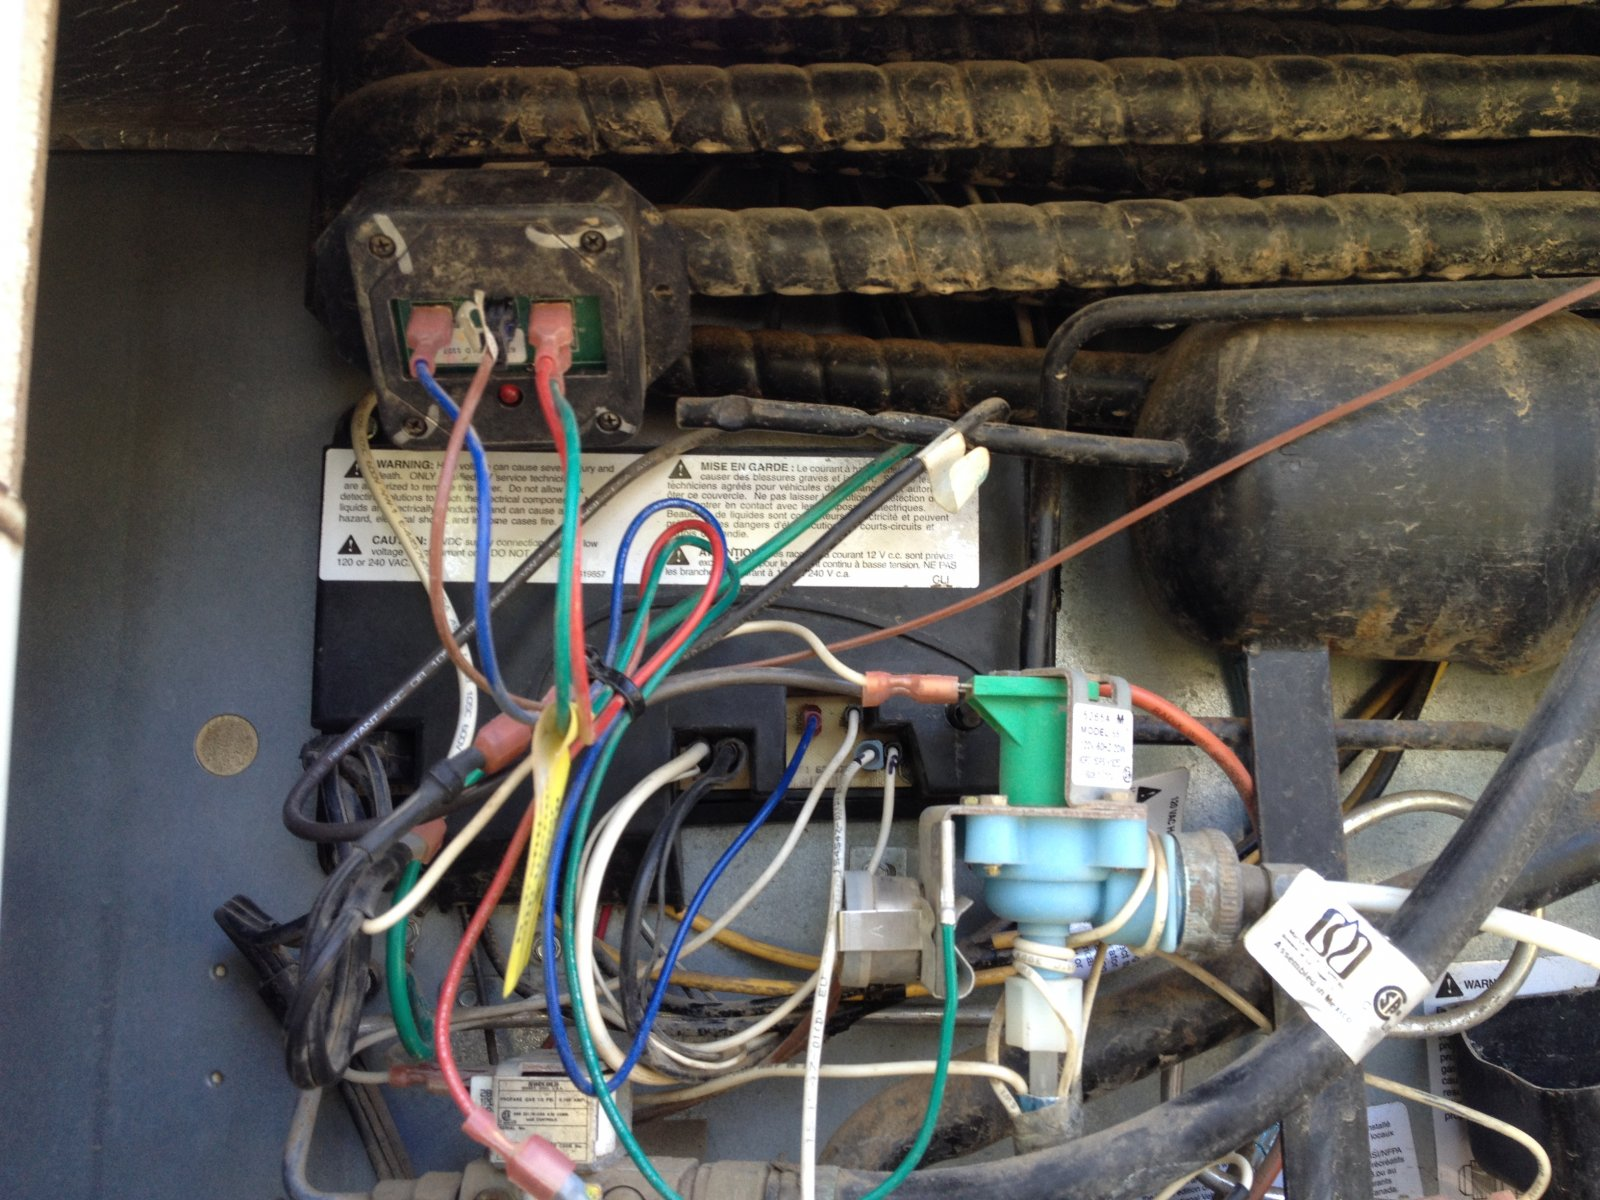 Chris Craft Wiring Diagram Just Wirings Norcold Refrigerator Fuse Location Air Conditioner A15602 Restoration